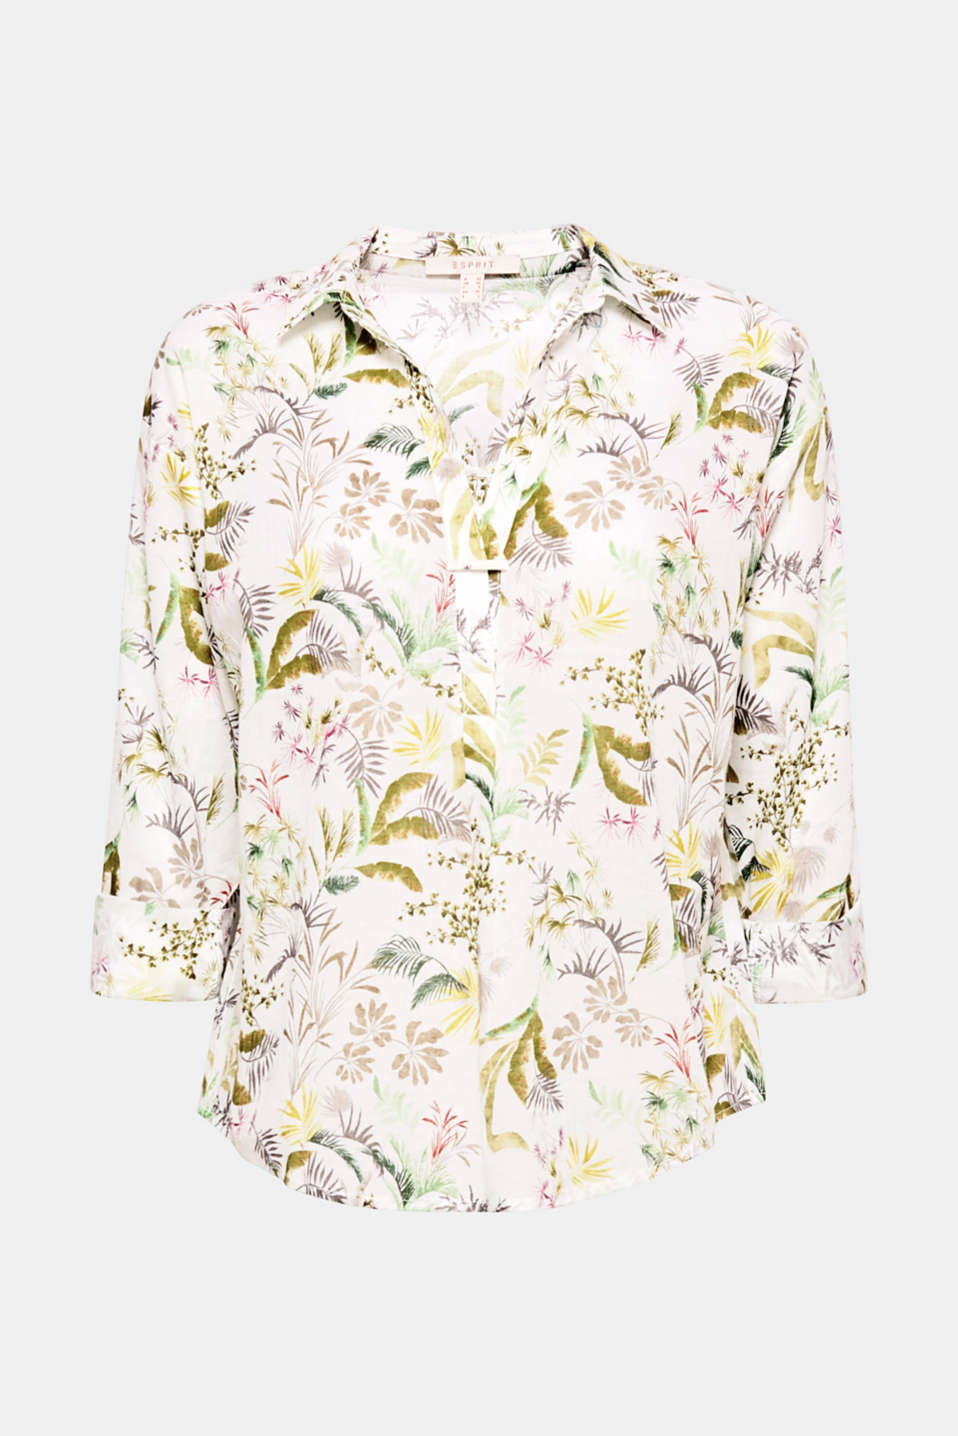 Off to tropical lands! The fine tropical print with leaves and blossoms defines this blouse along with the casual boxy design.